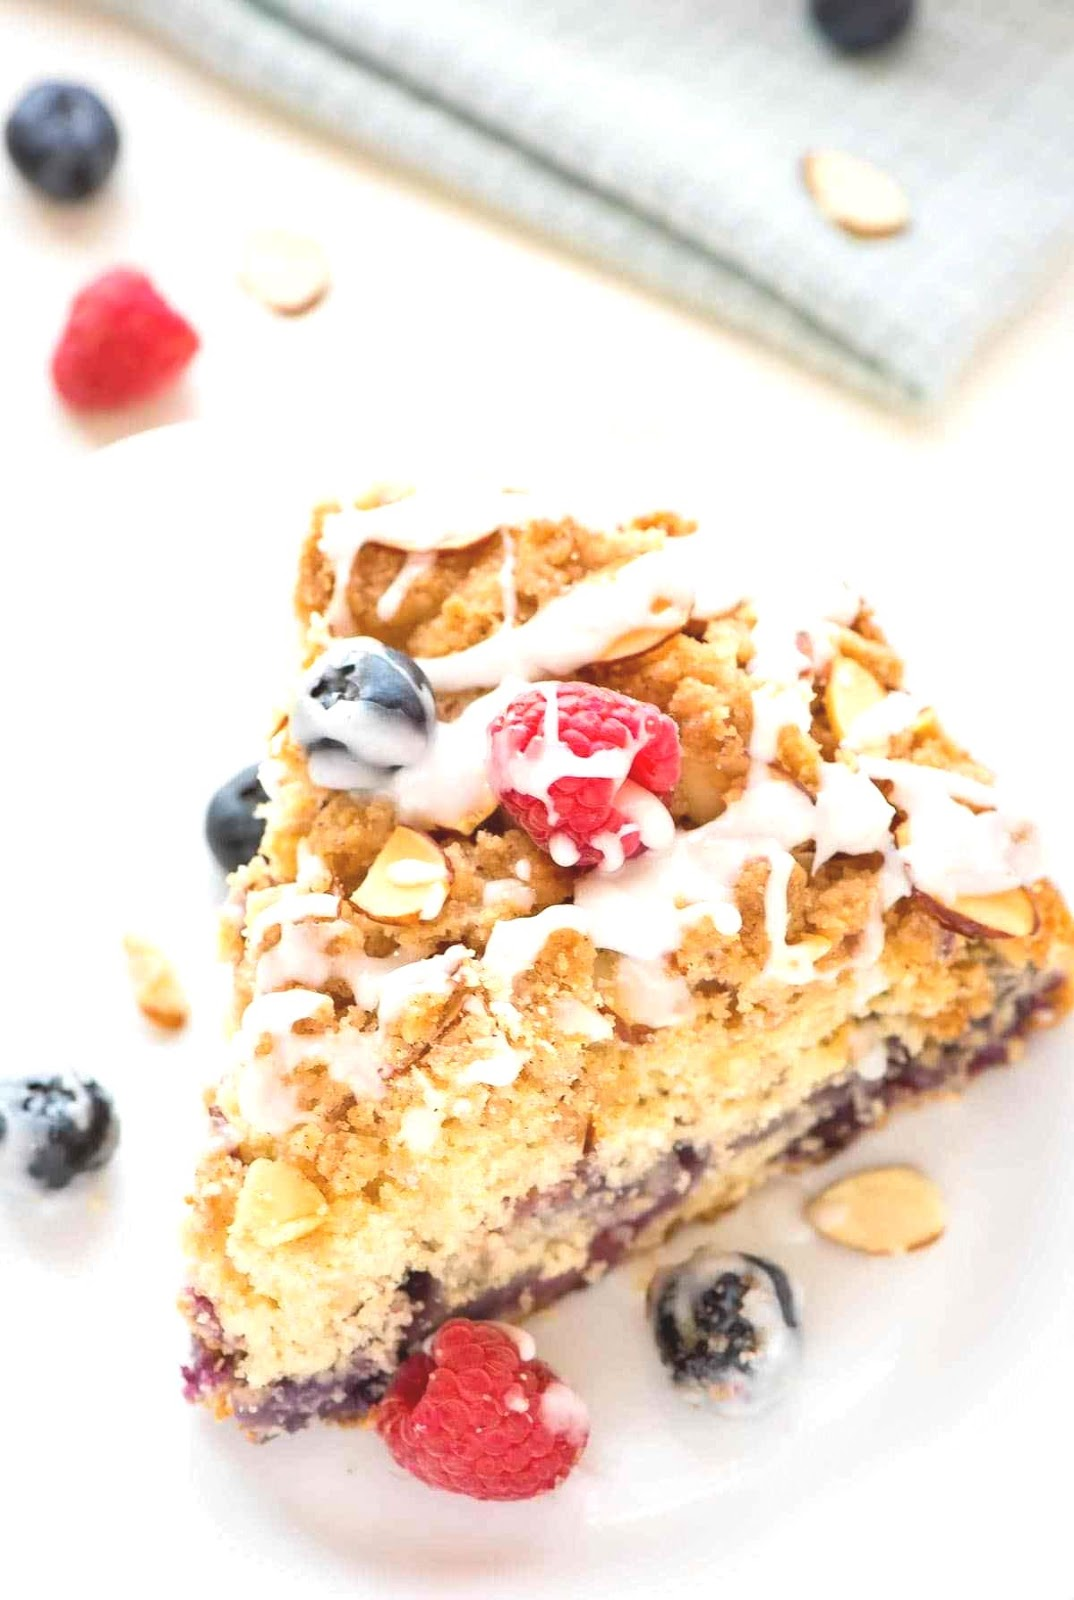 Blueberry crumb cake recipe with cinnamon streusel topping